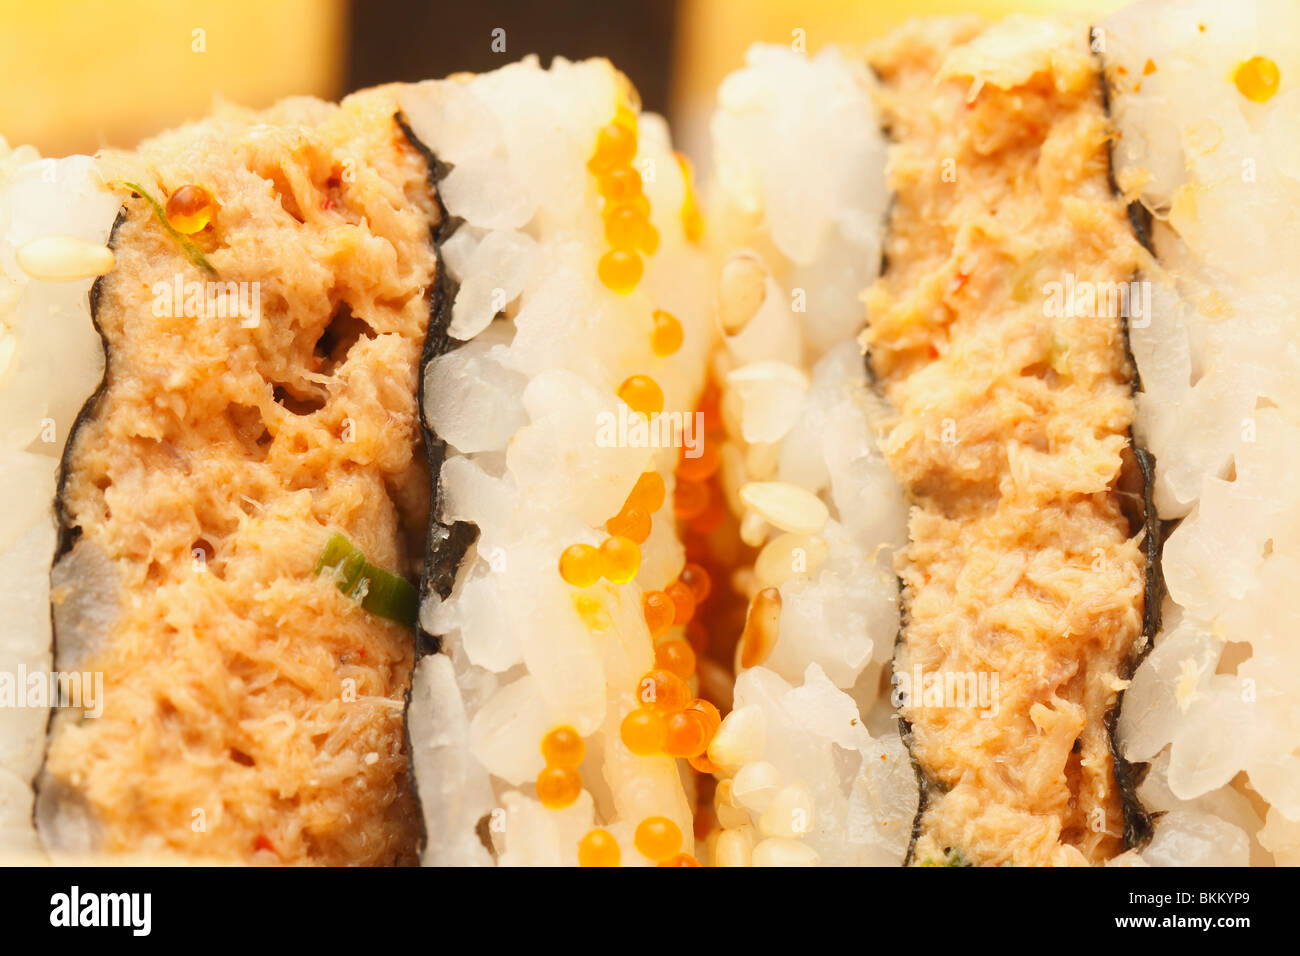 Sushi Sandwich snake Assortment close up. - Stock Image